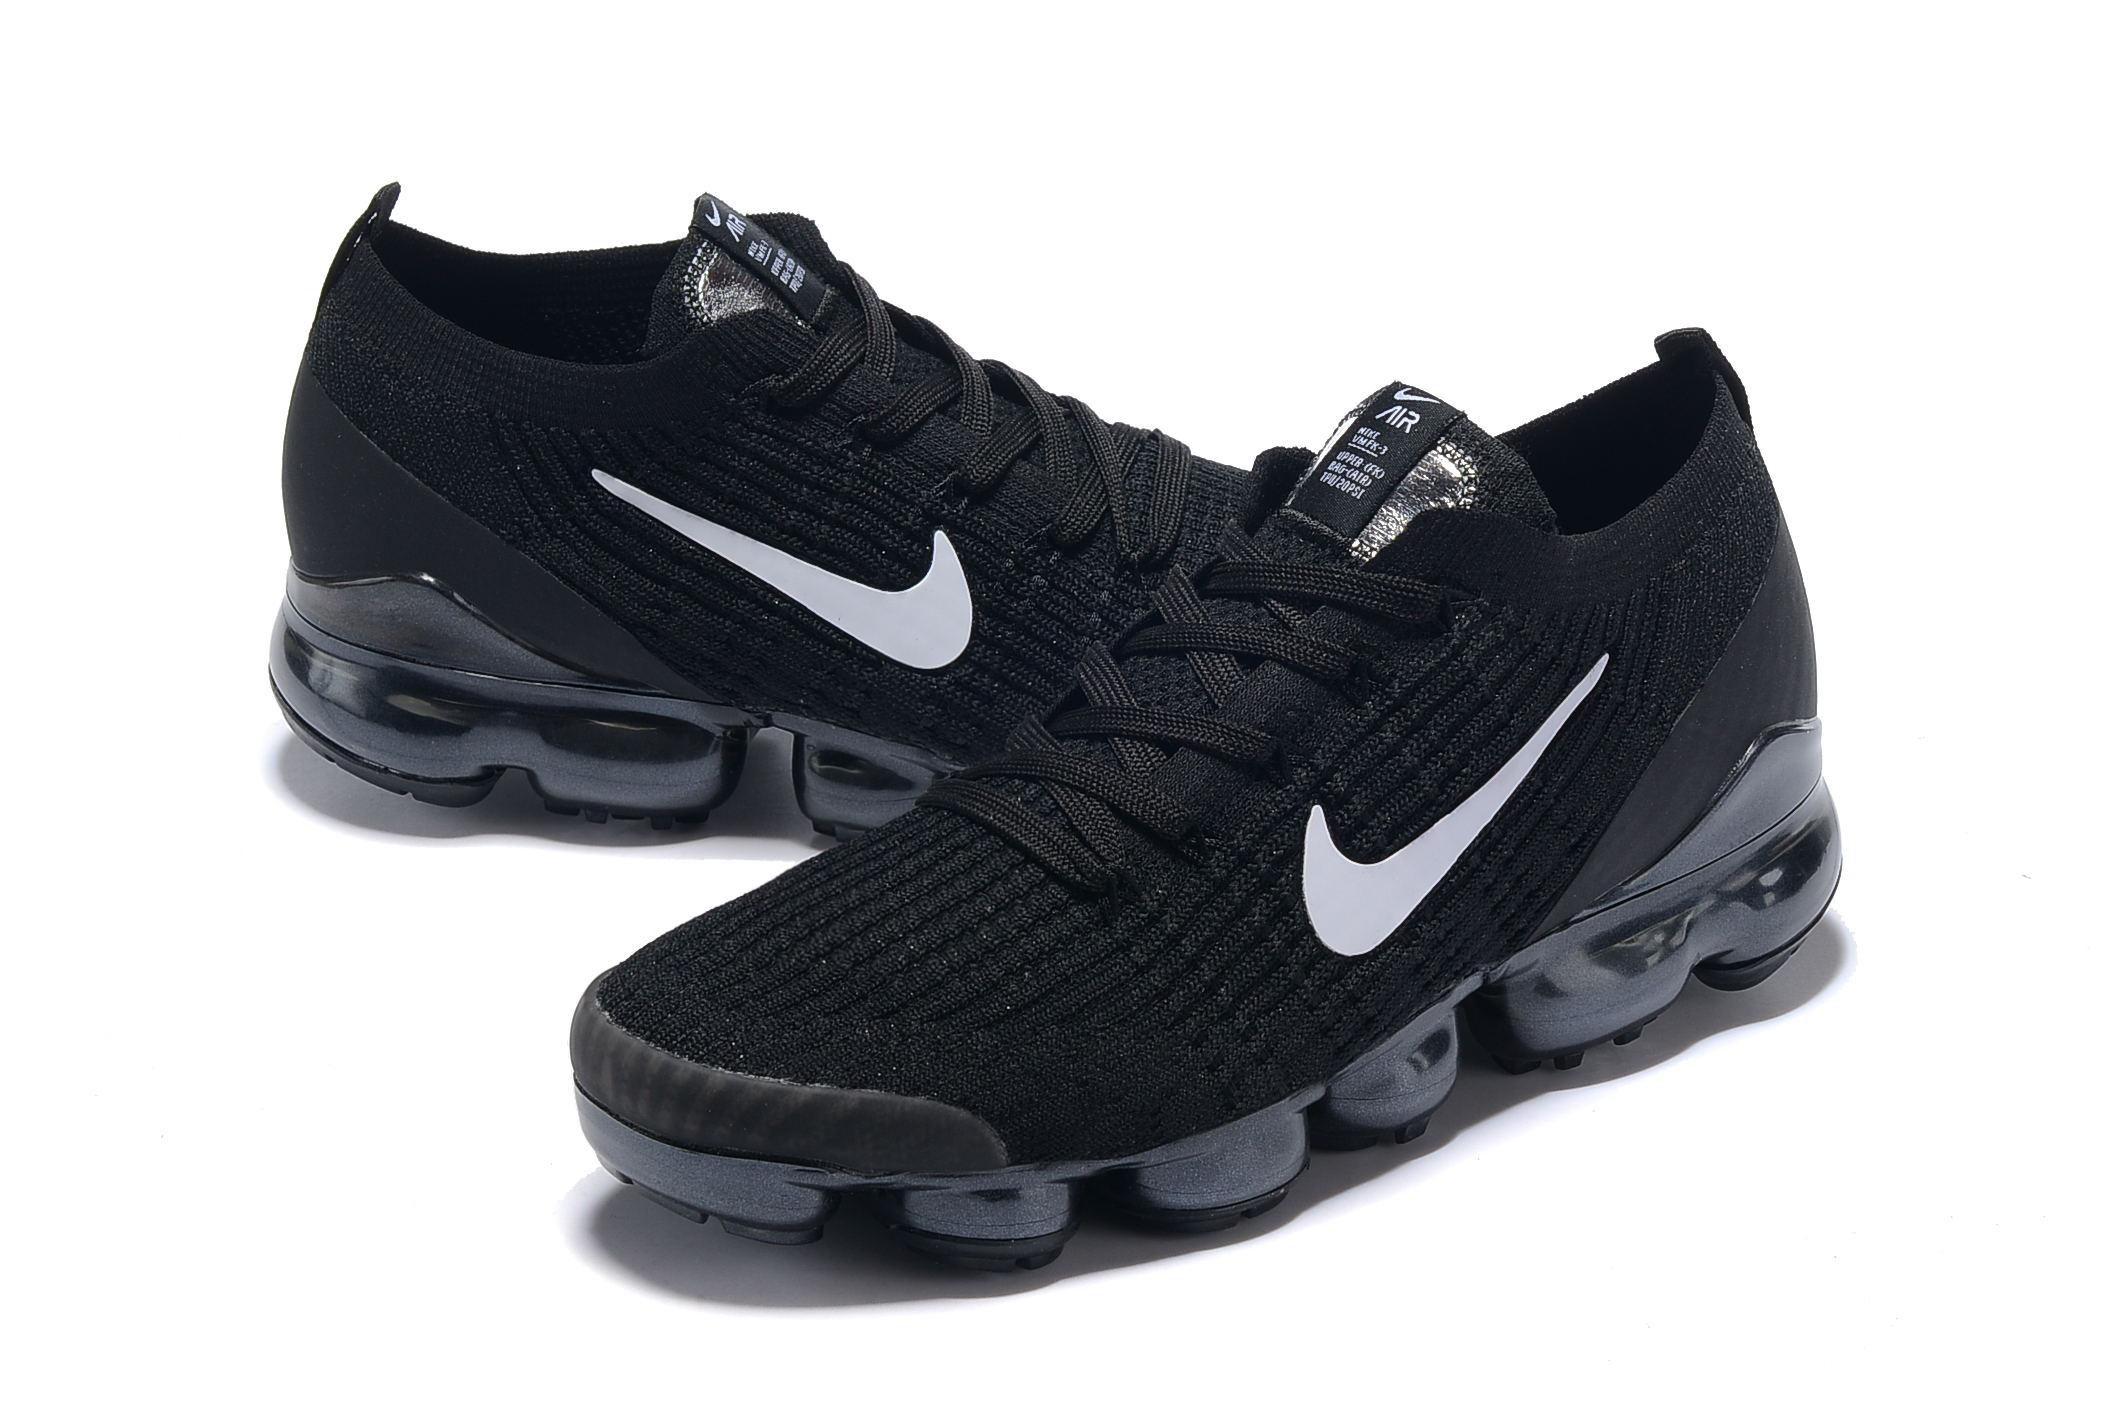 Nike Air VaporMax 2019 Flyknit Black White Shoes